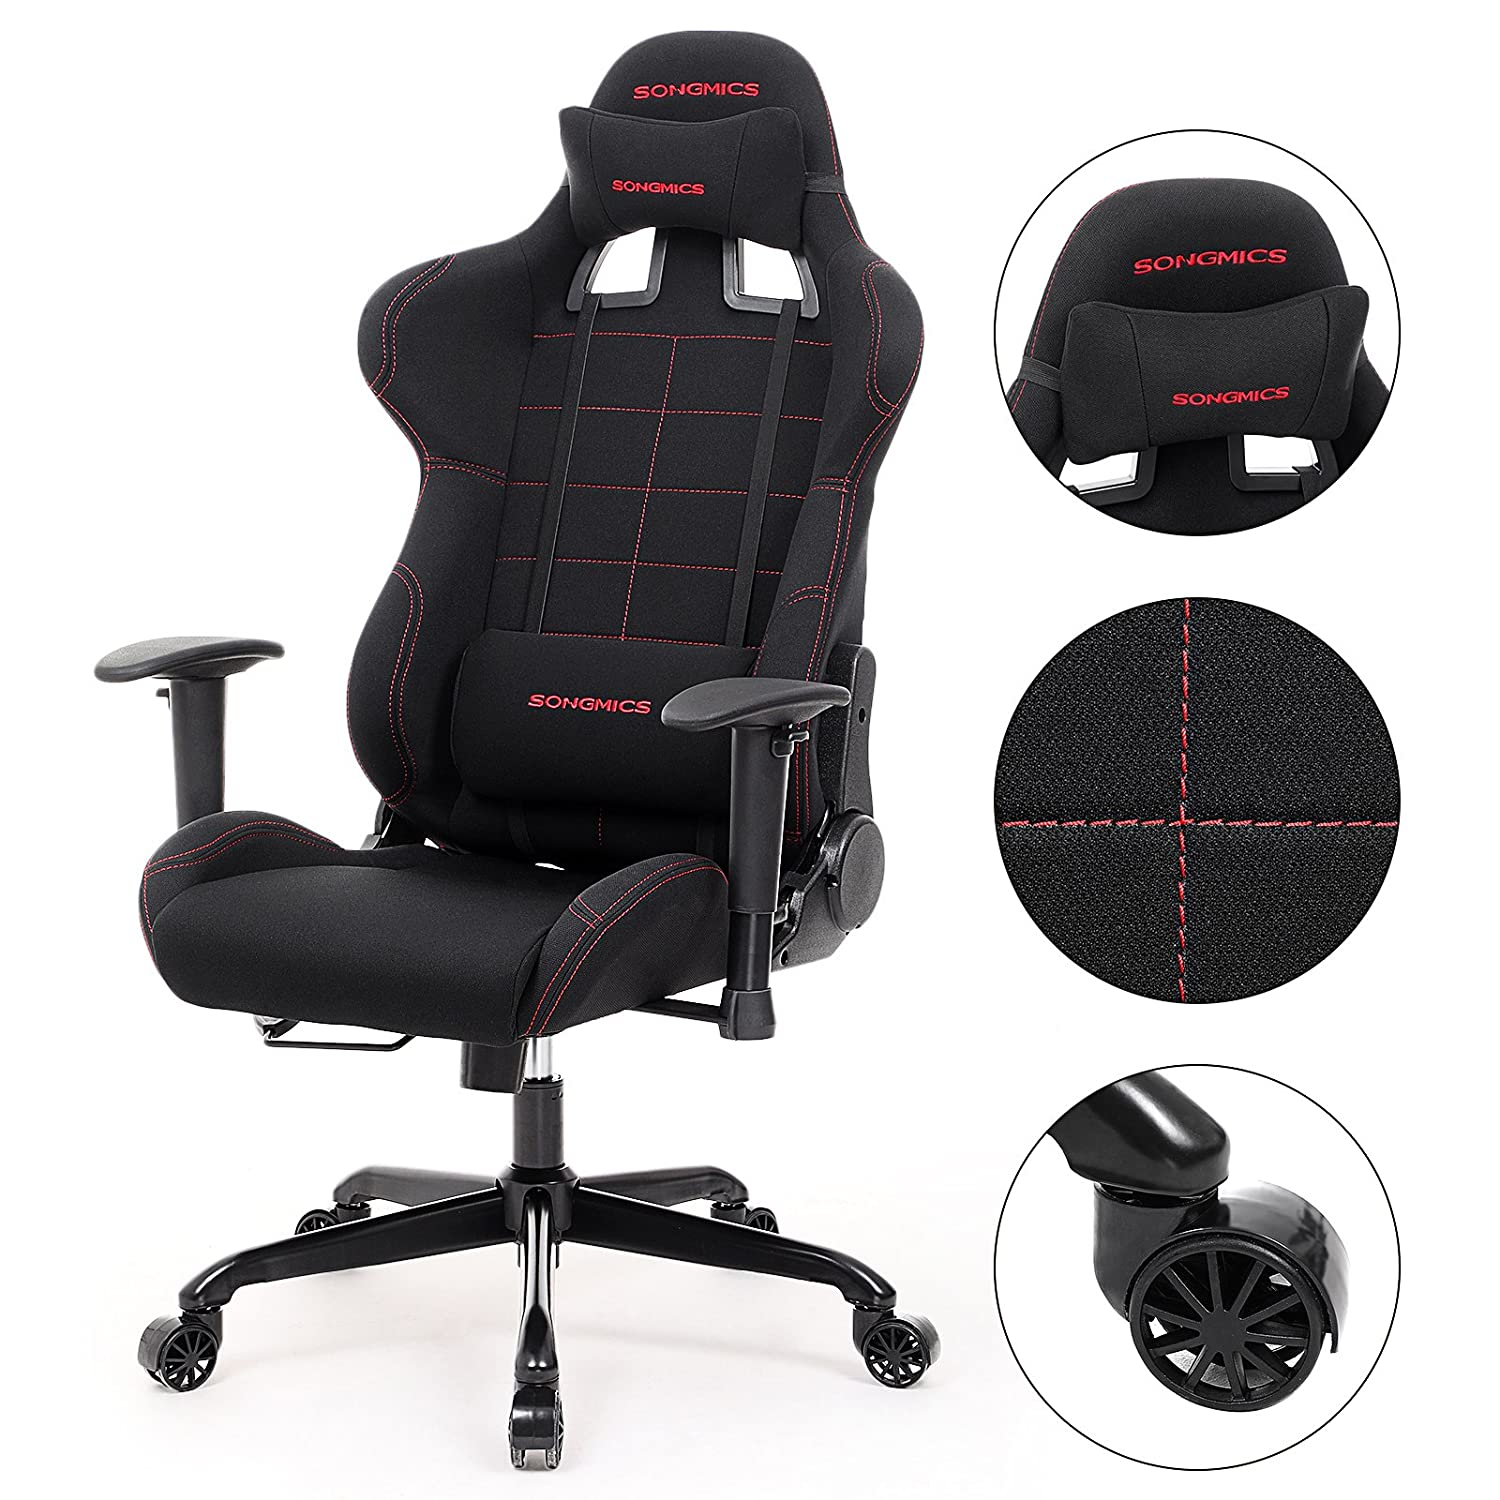 Amazon SONGMICS Gaming Chair Racing Sport Chair High back